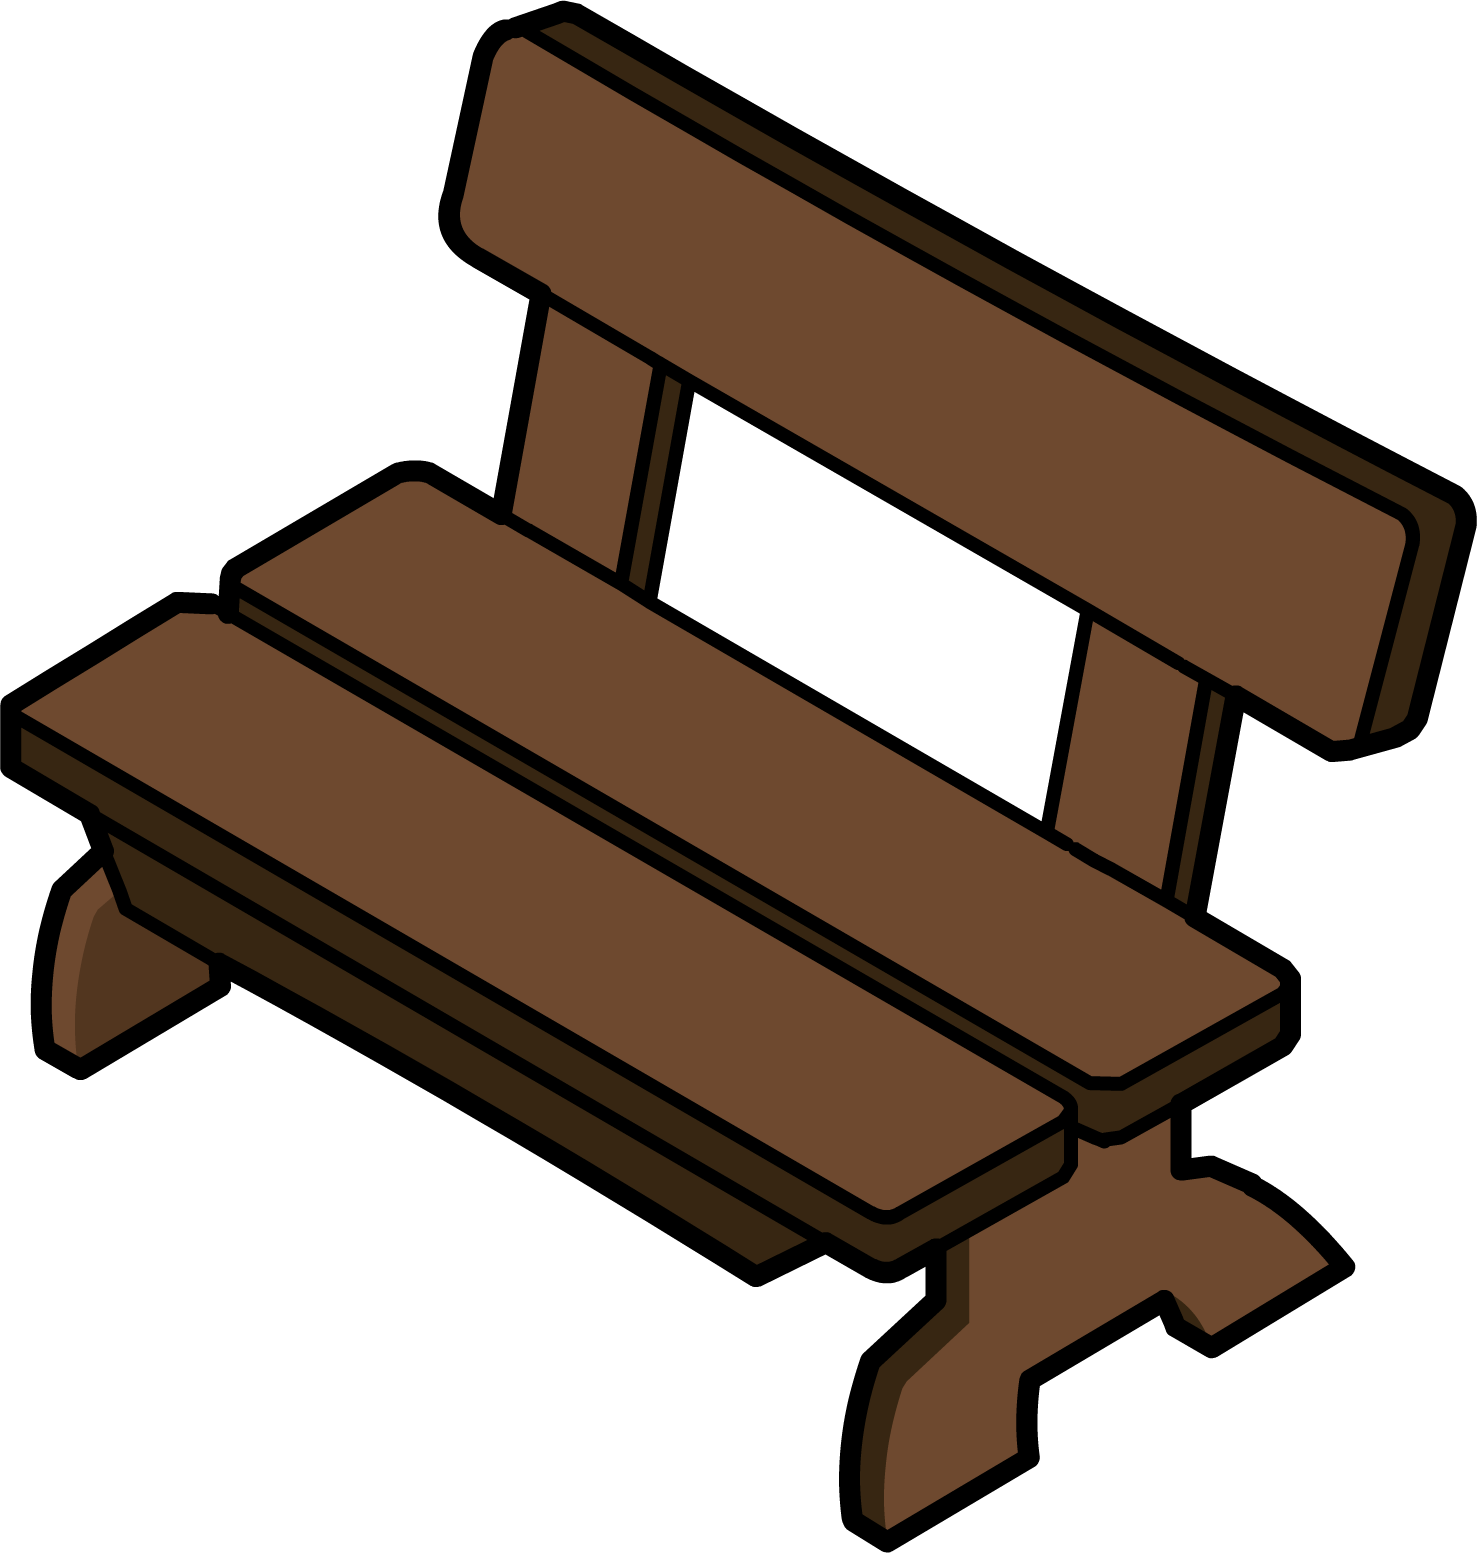 Piano clipart piano bench. Collection of free benches